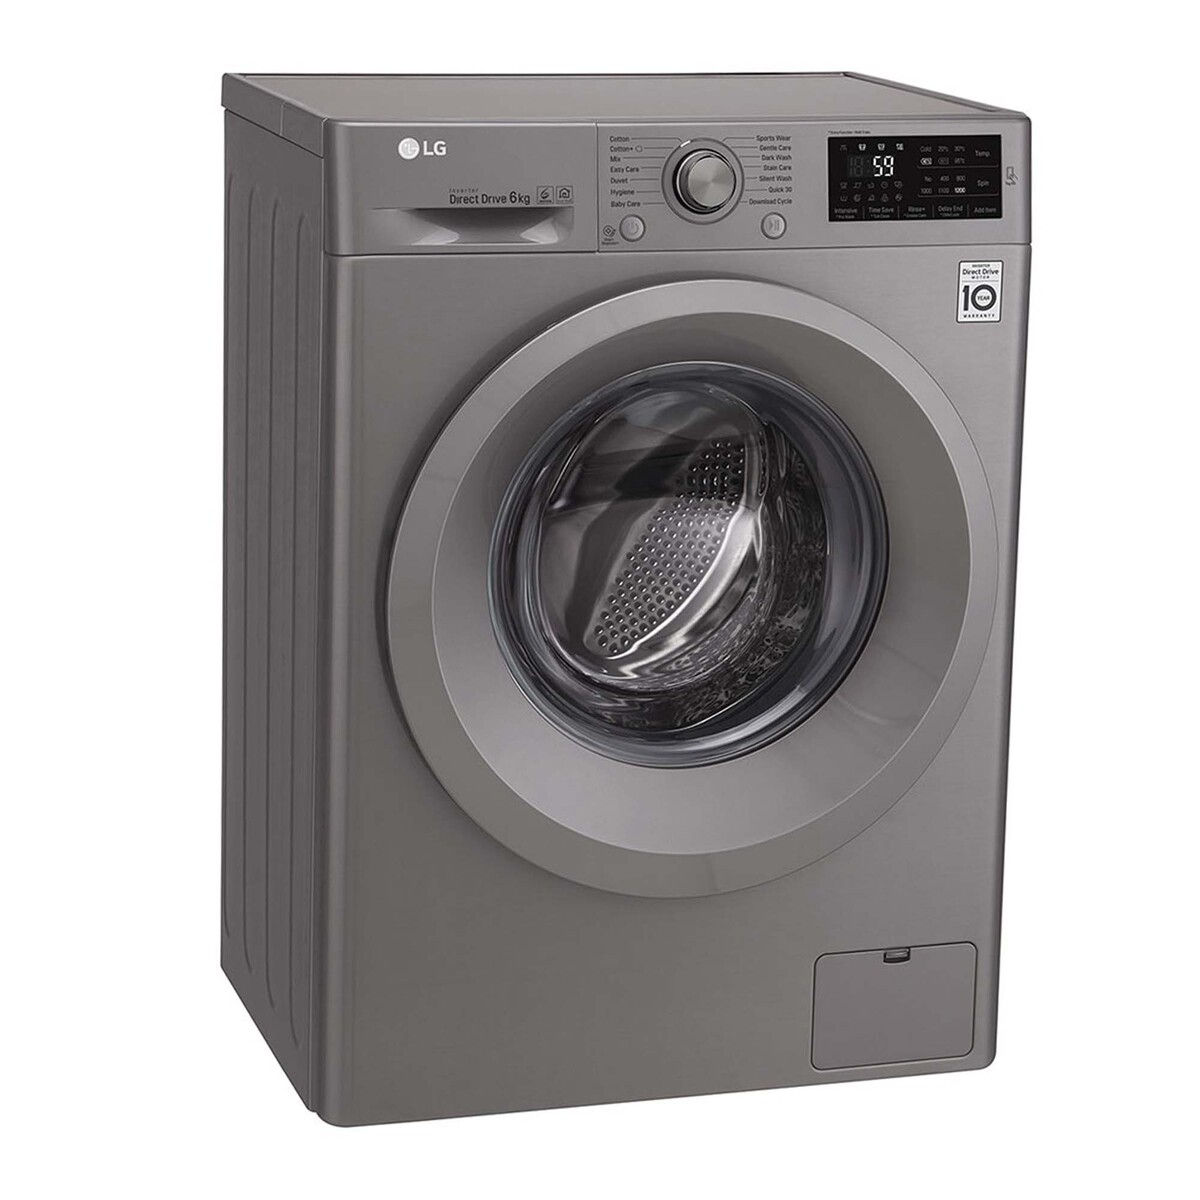 LG Front Load Washing Machine F2J5NNP7S 6Kg, 6motion, Inverter Direct Drive Motor, Add Item Function